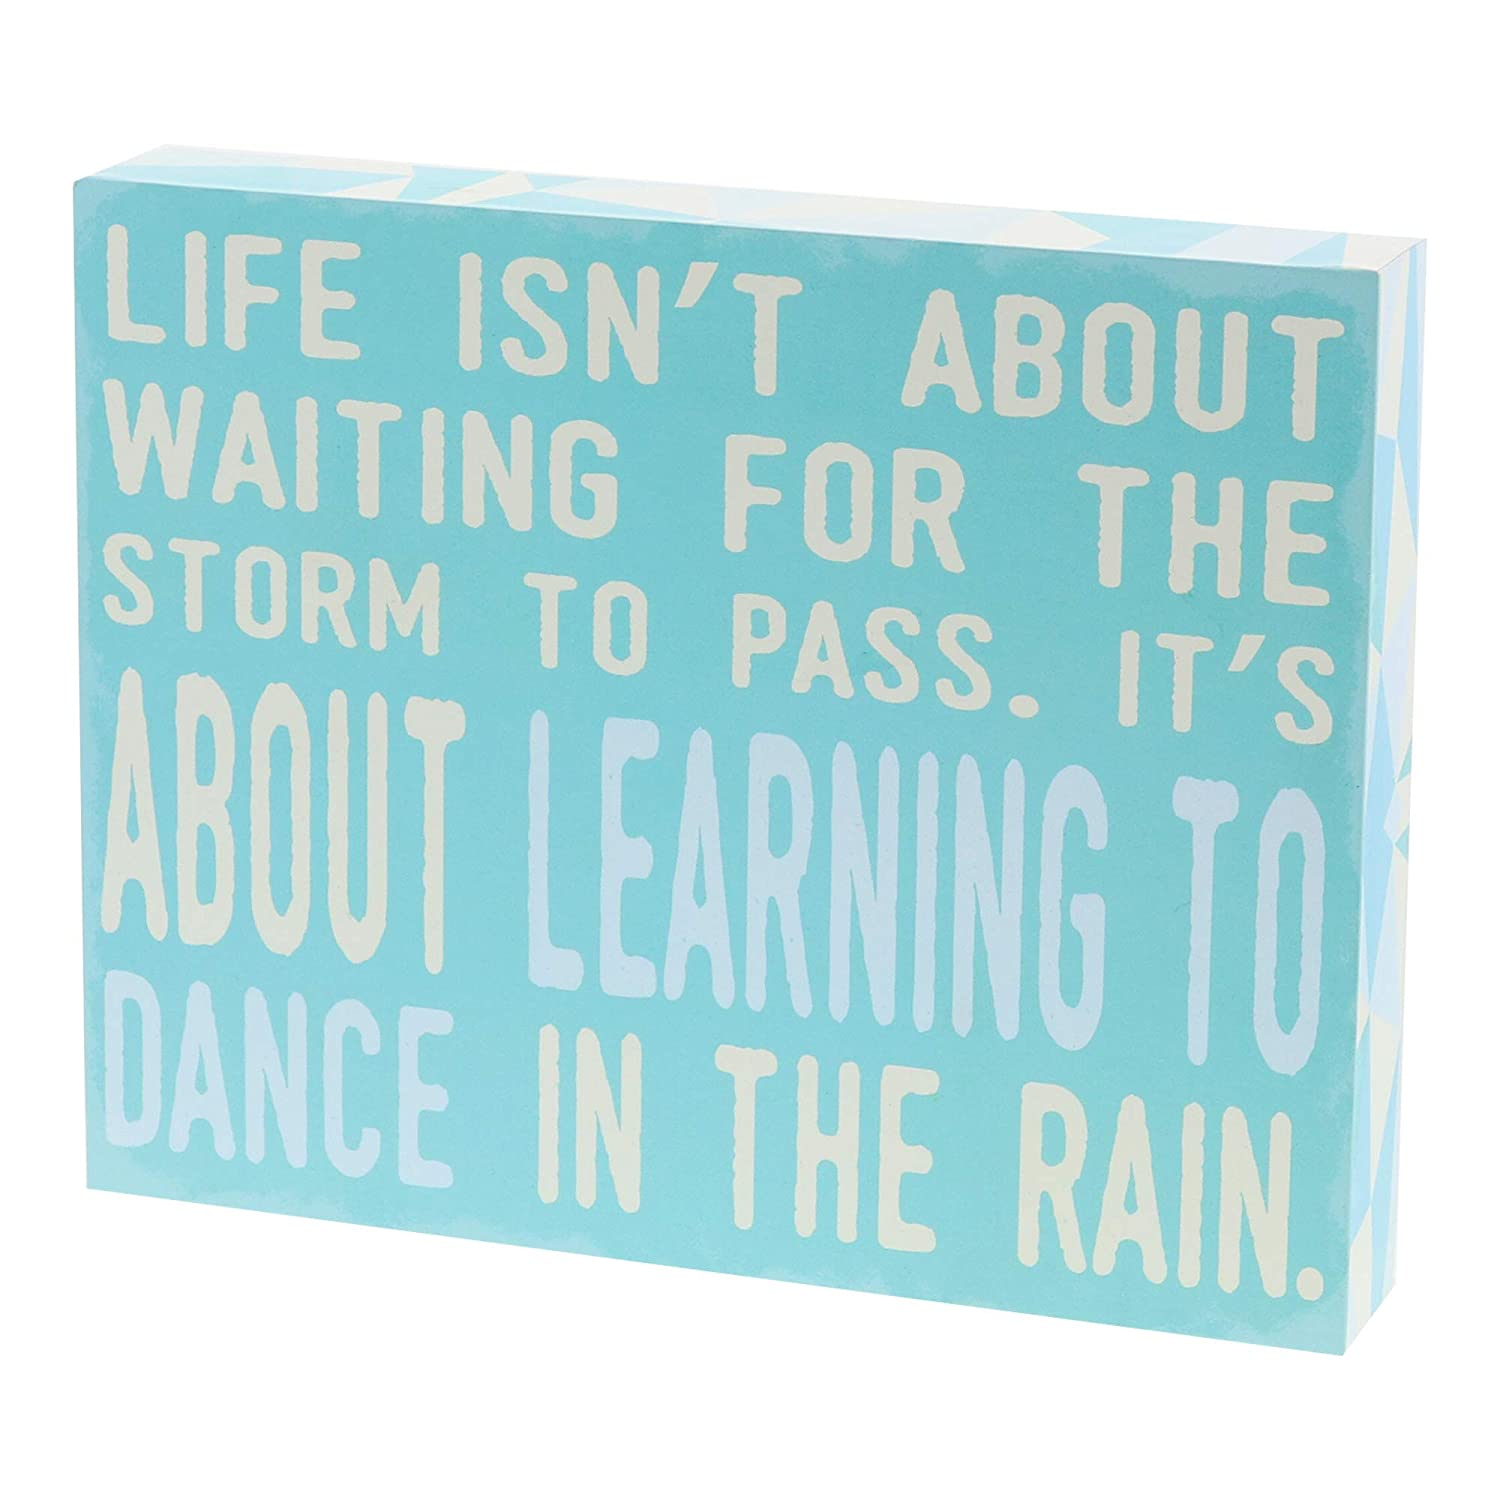 "Barnyard Designs Life Isn't About Waiting for The Storm to Pass Box Wall Art Sign, Primitive Country Farmhouse Home Decor Sign with Sayings 10"" x 8"""